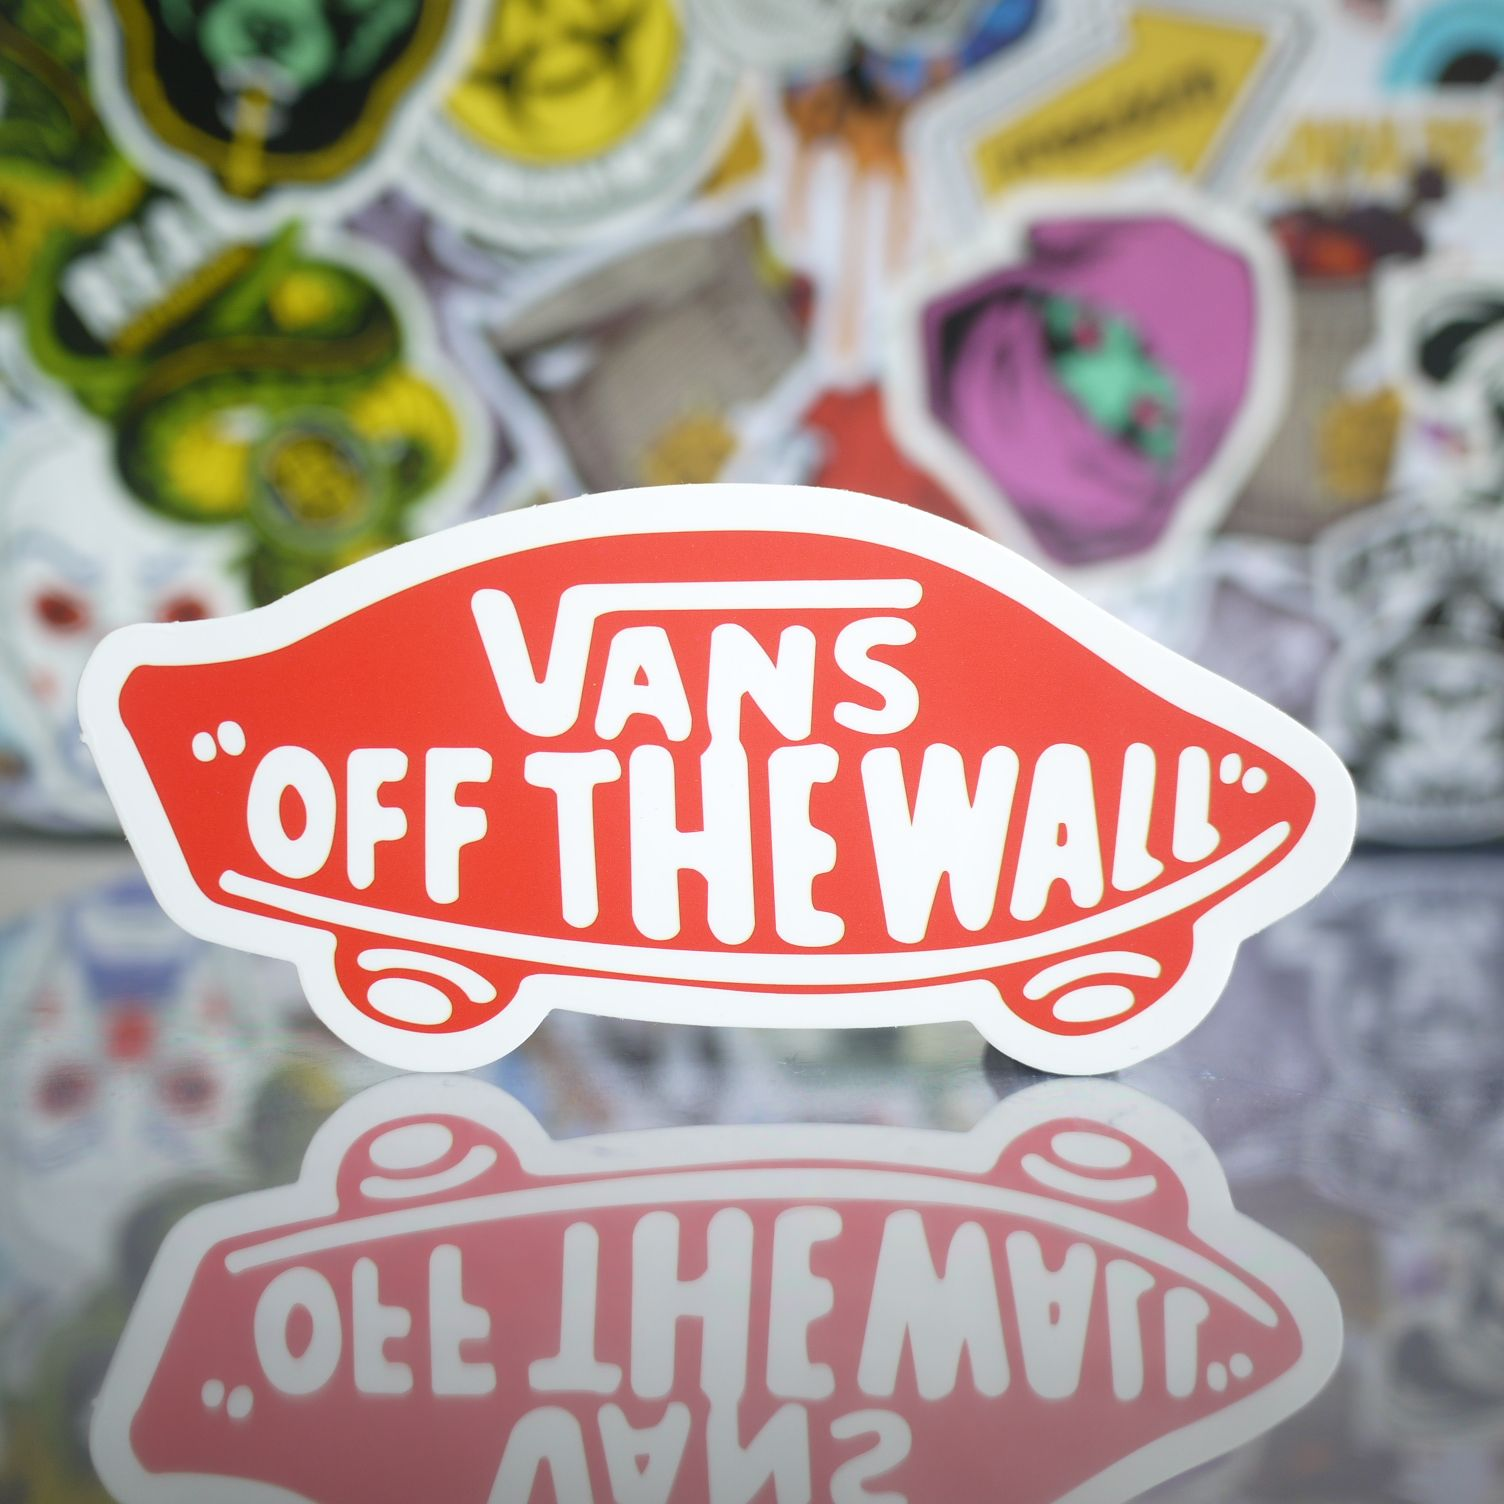 Vans off the wall classic logo sticker skateboard stickers vans off the wall classic logo sticker amipublicfo Choice Image